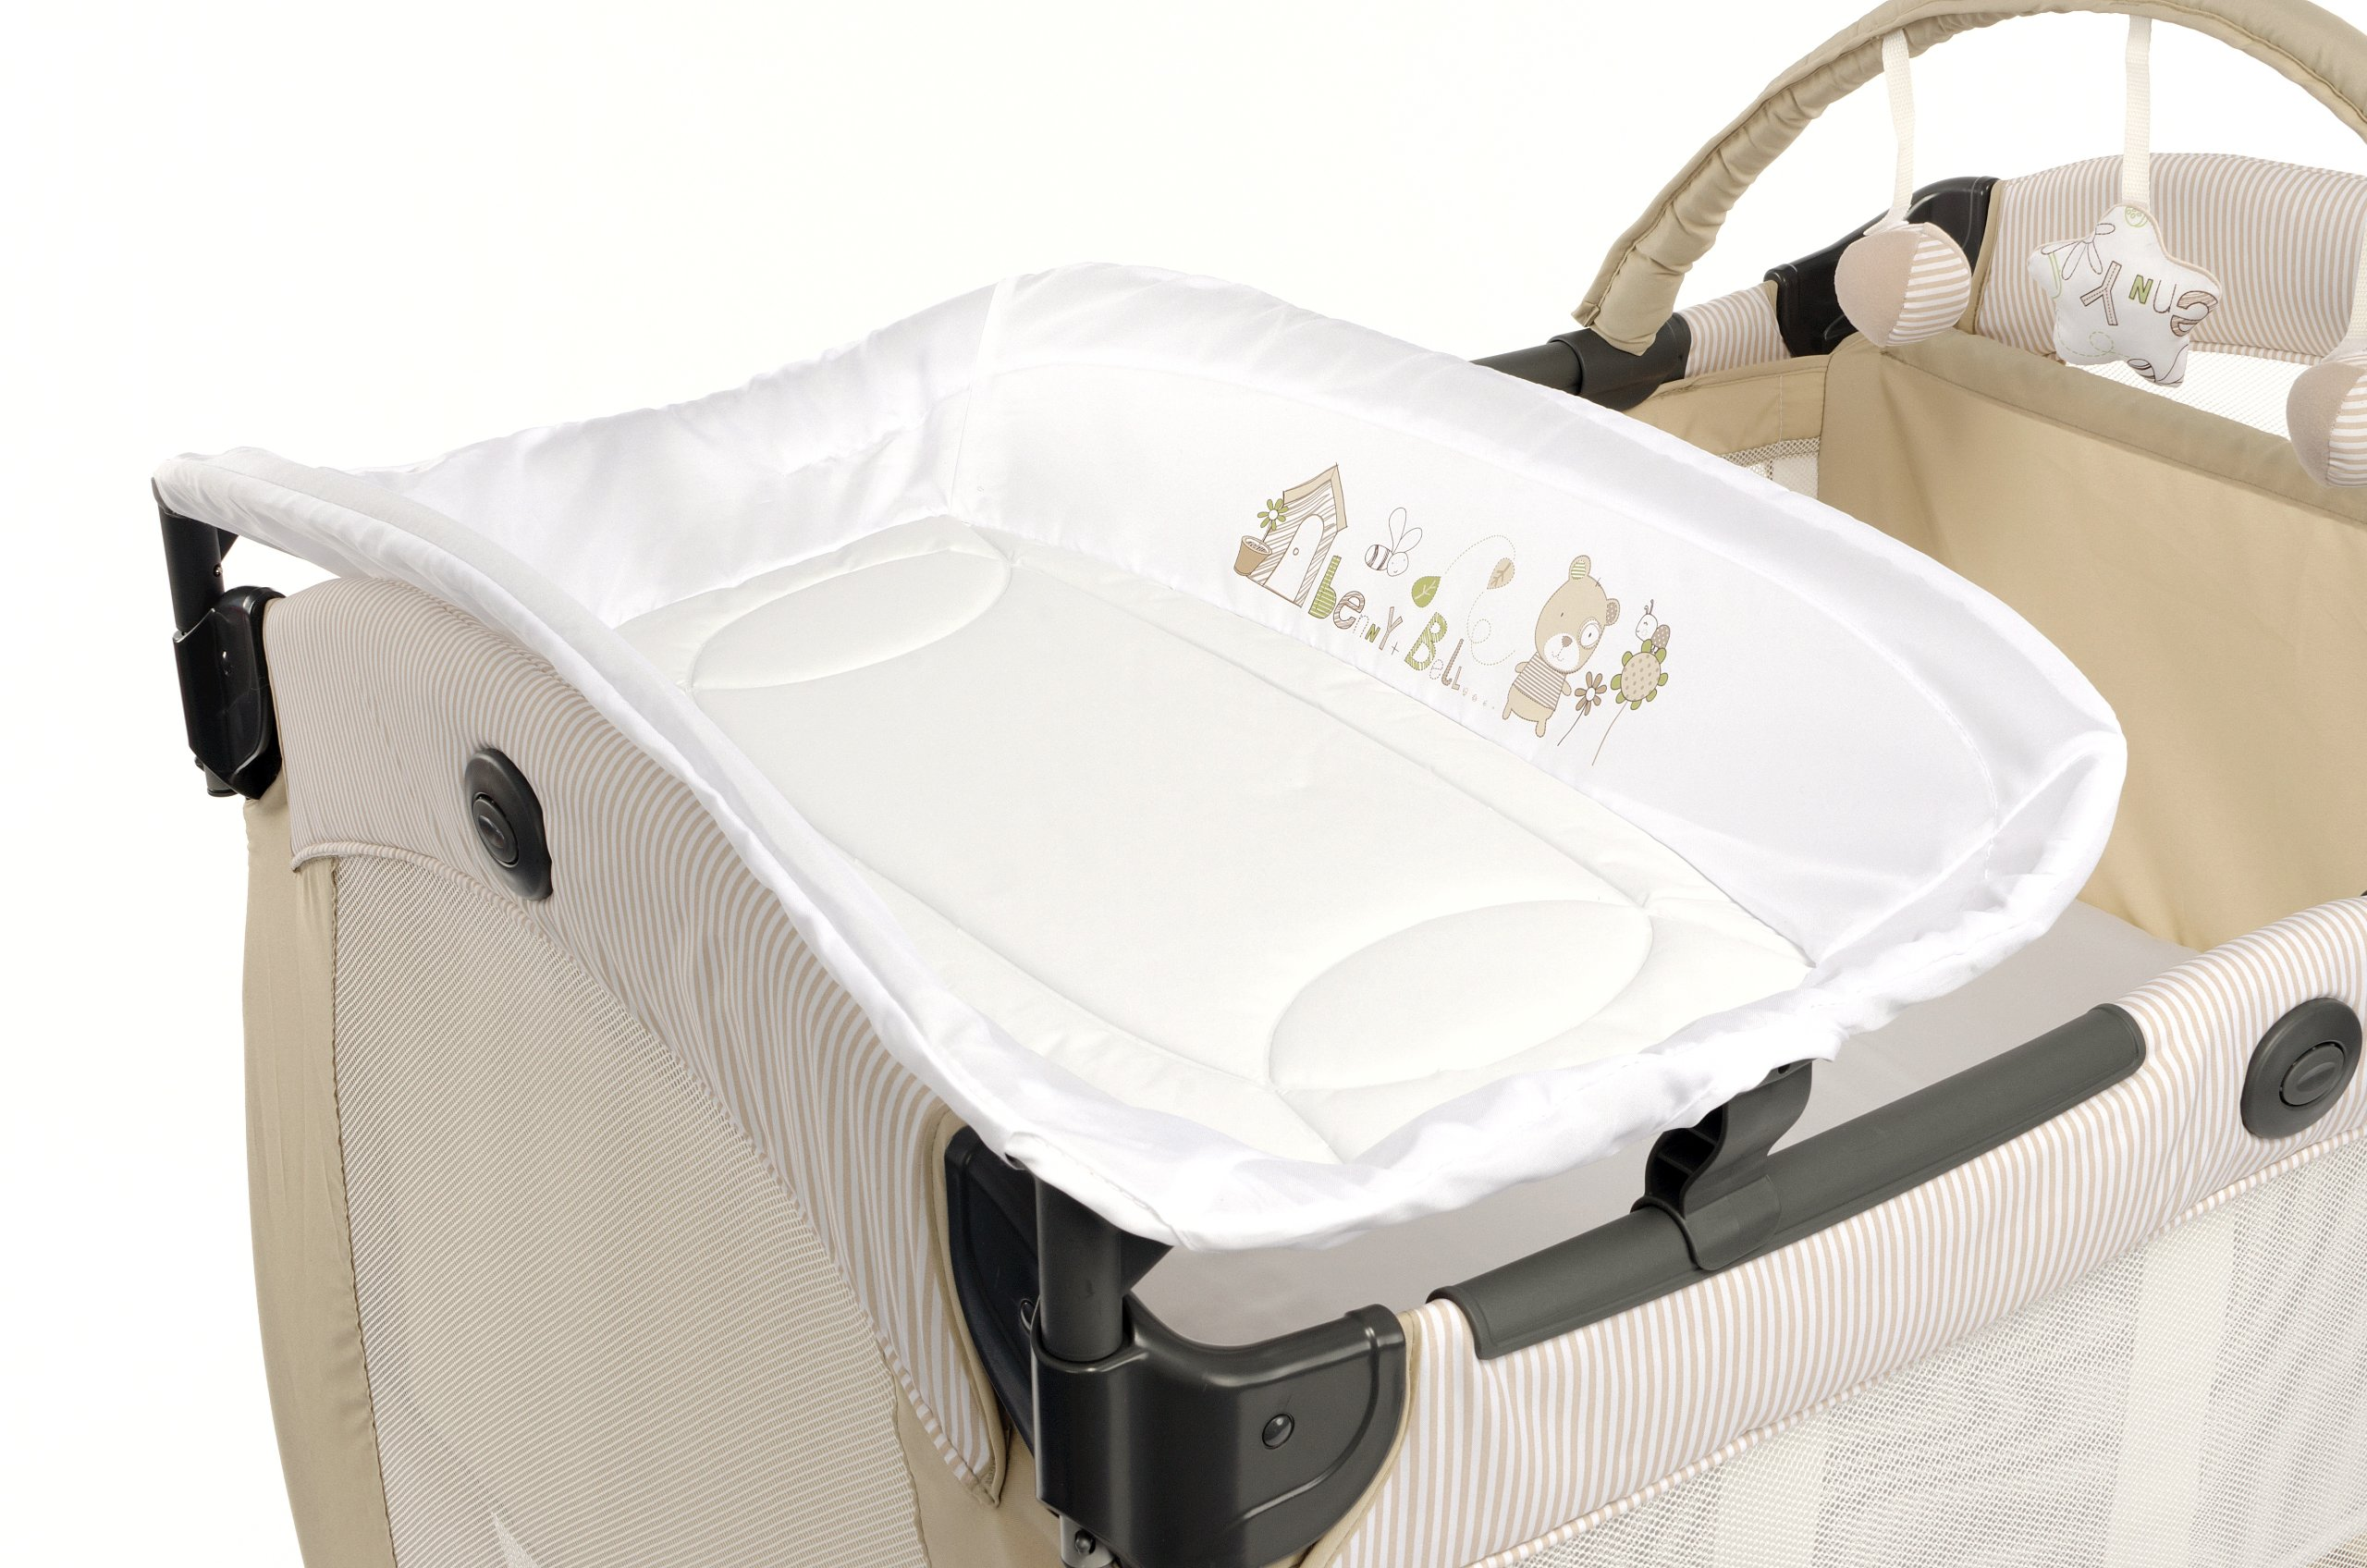 Graco Contour Electra Travel Cot - Benny and Bell Graco The bassinet is suitable from birth to 6.5 kg/3 months The bed is suitable from birth to about 3 years/15 kg Detachable control box for night light, music and vibration 2